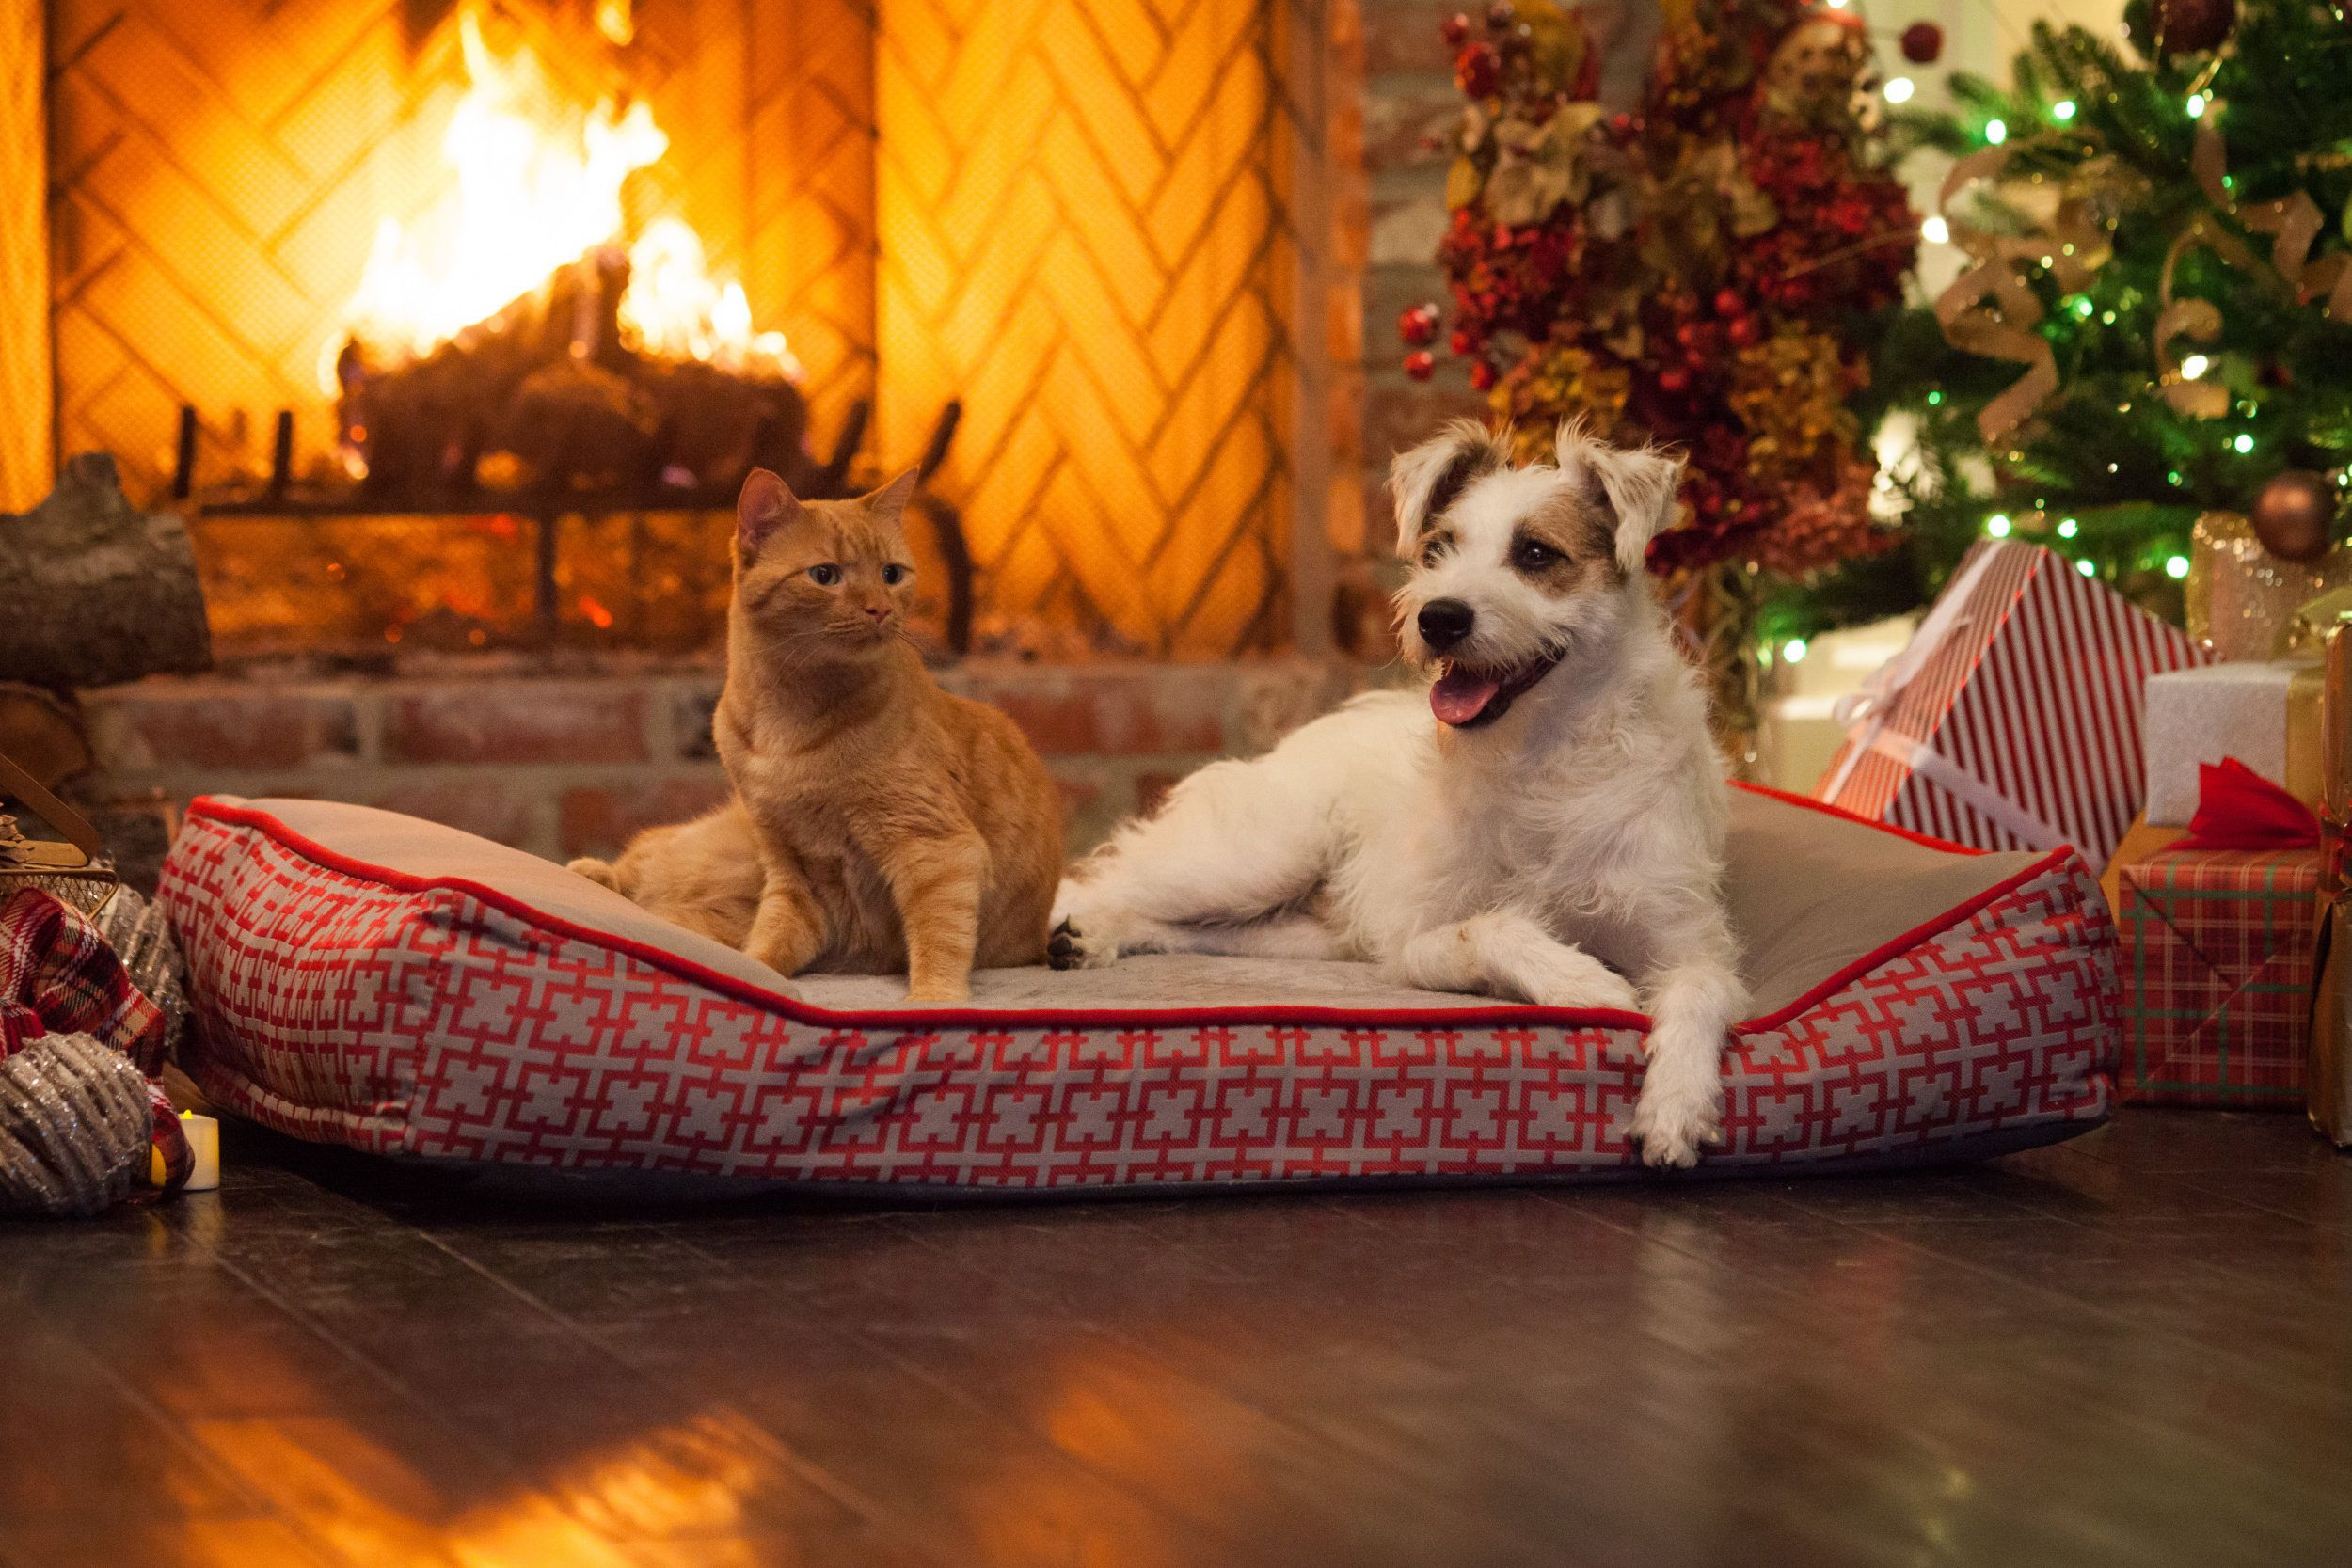 Check Out Happy The Cat And Happy The Dog In Front Of The Yule Log